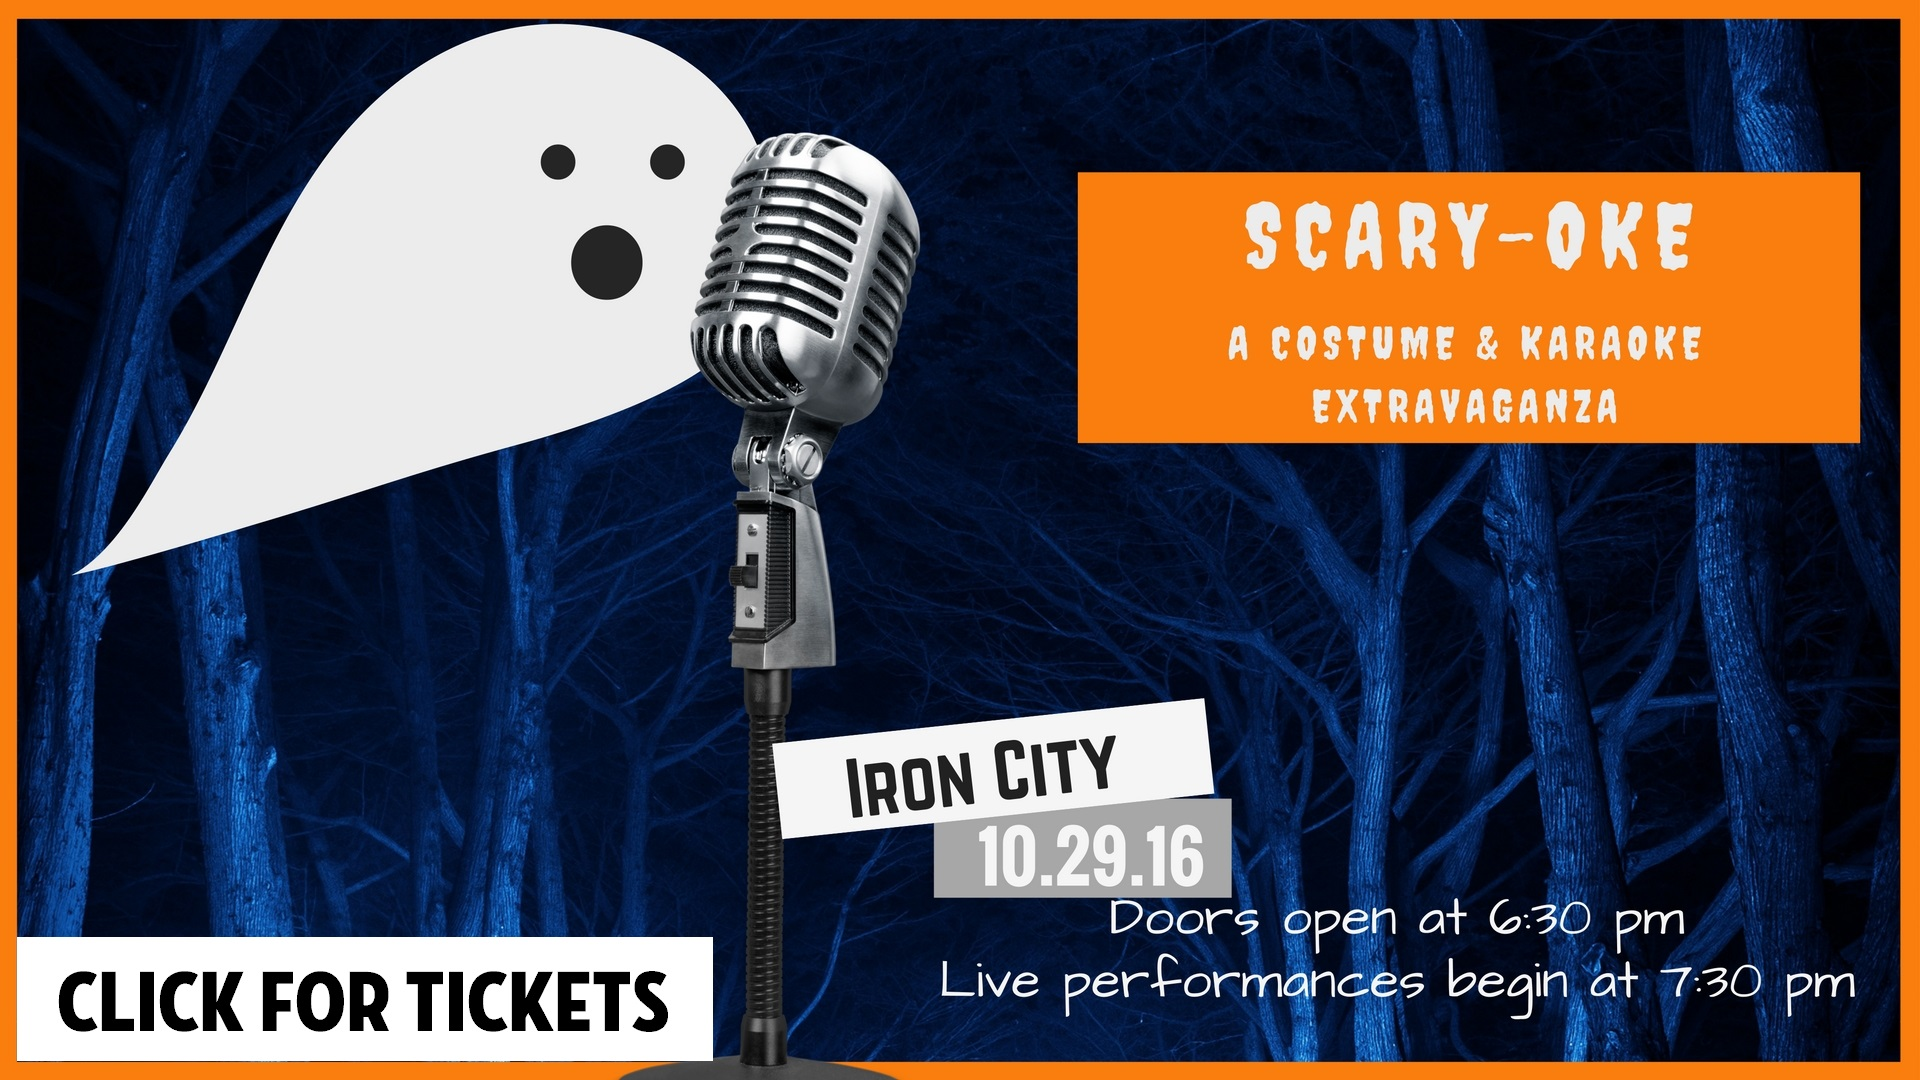 scary-oke-1920-by-1080-click-for-tickets